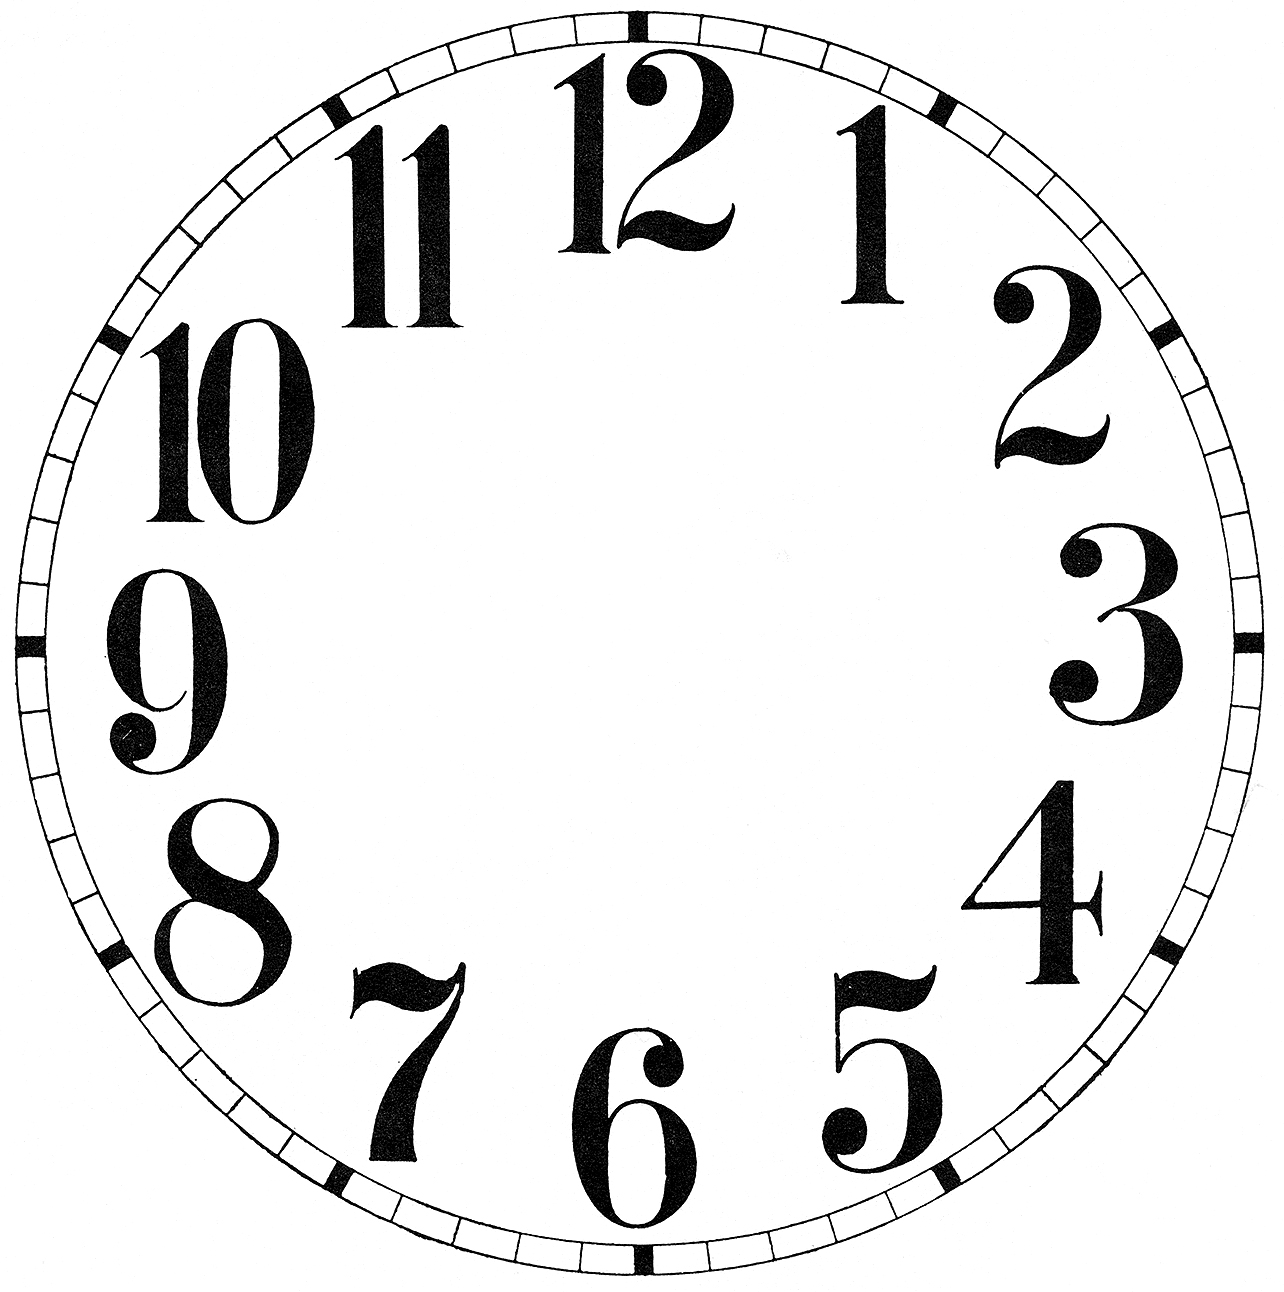 graphic about Clock Faces Printable called 11 Clock Facial area Photos - Print Your Particular! - The Graphics Fairy